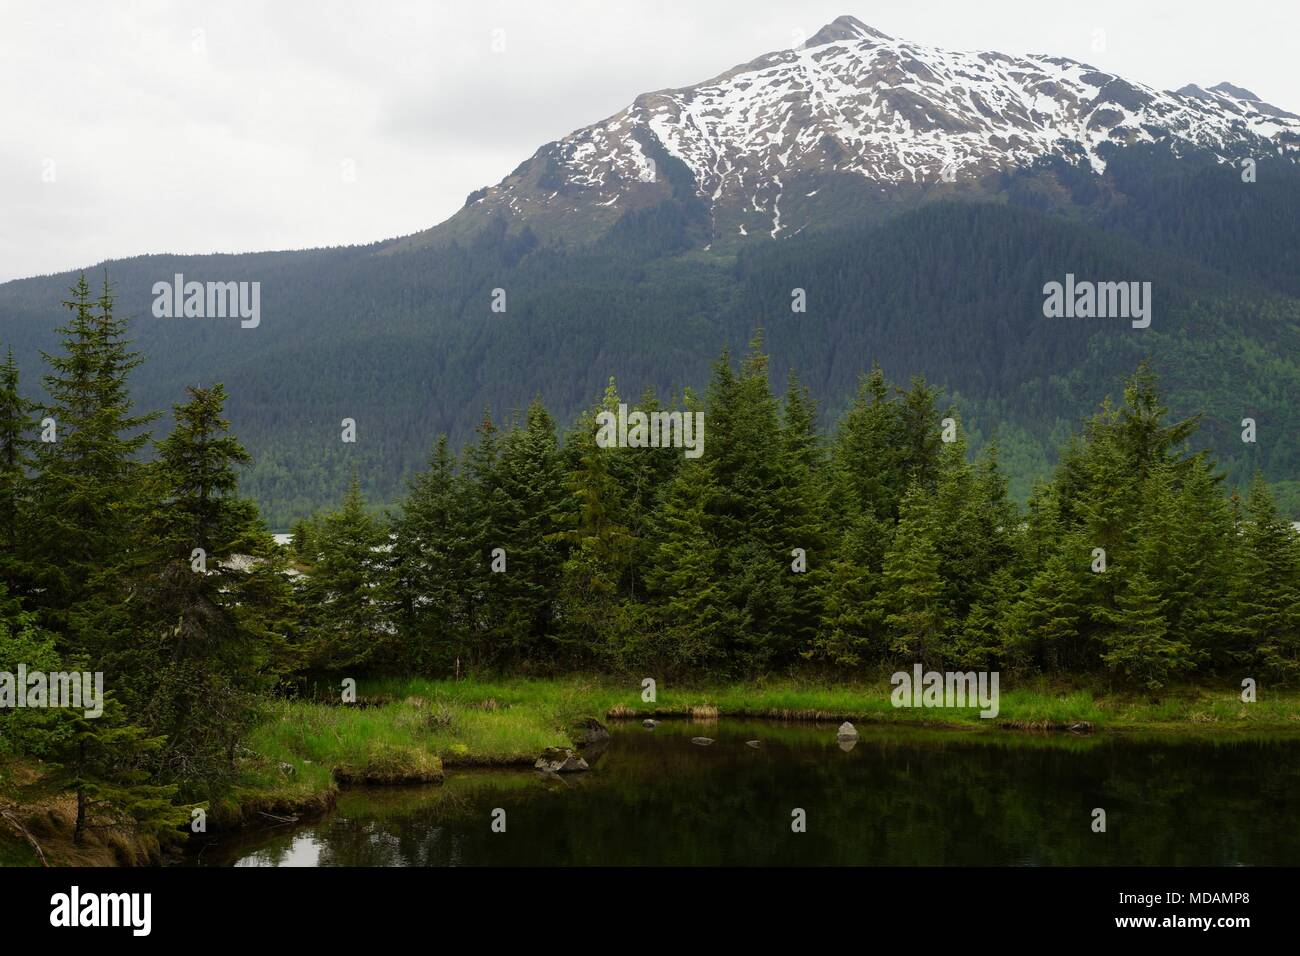 A patch of spruce forest next to the black water with a show capped mountain on the foreground next to Mendenhall glacier, Alaska. - Stock Image